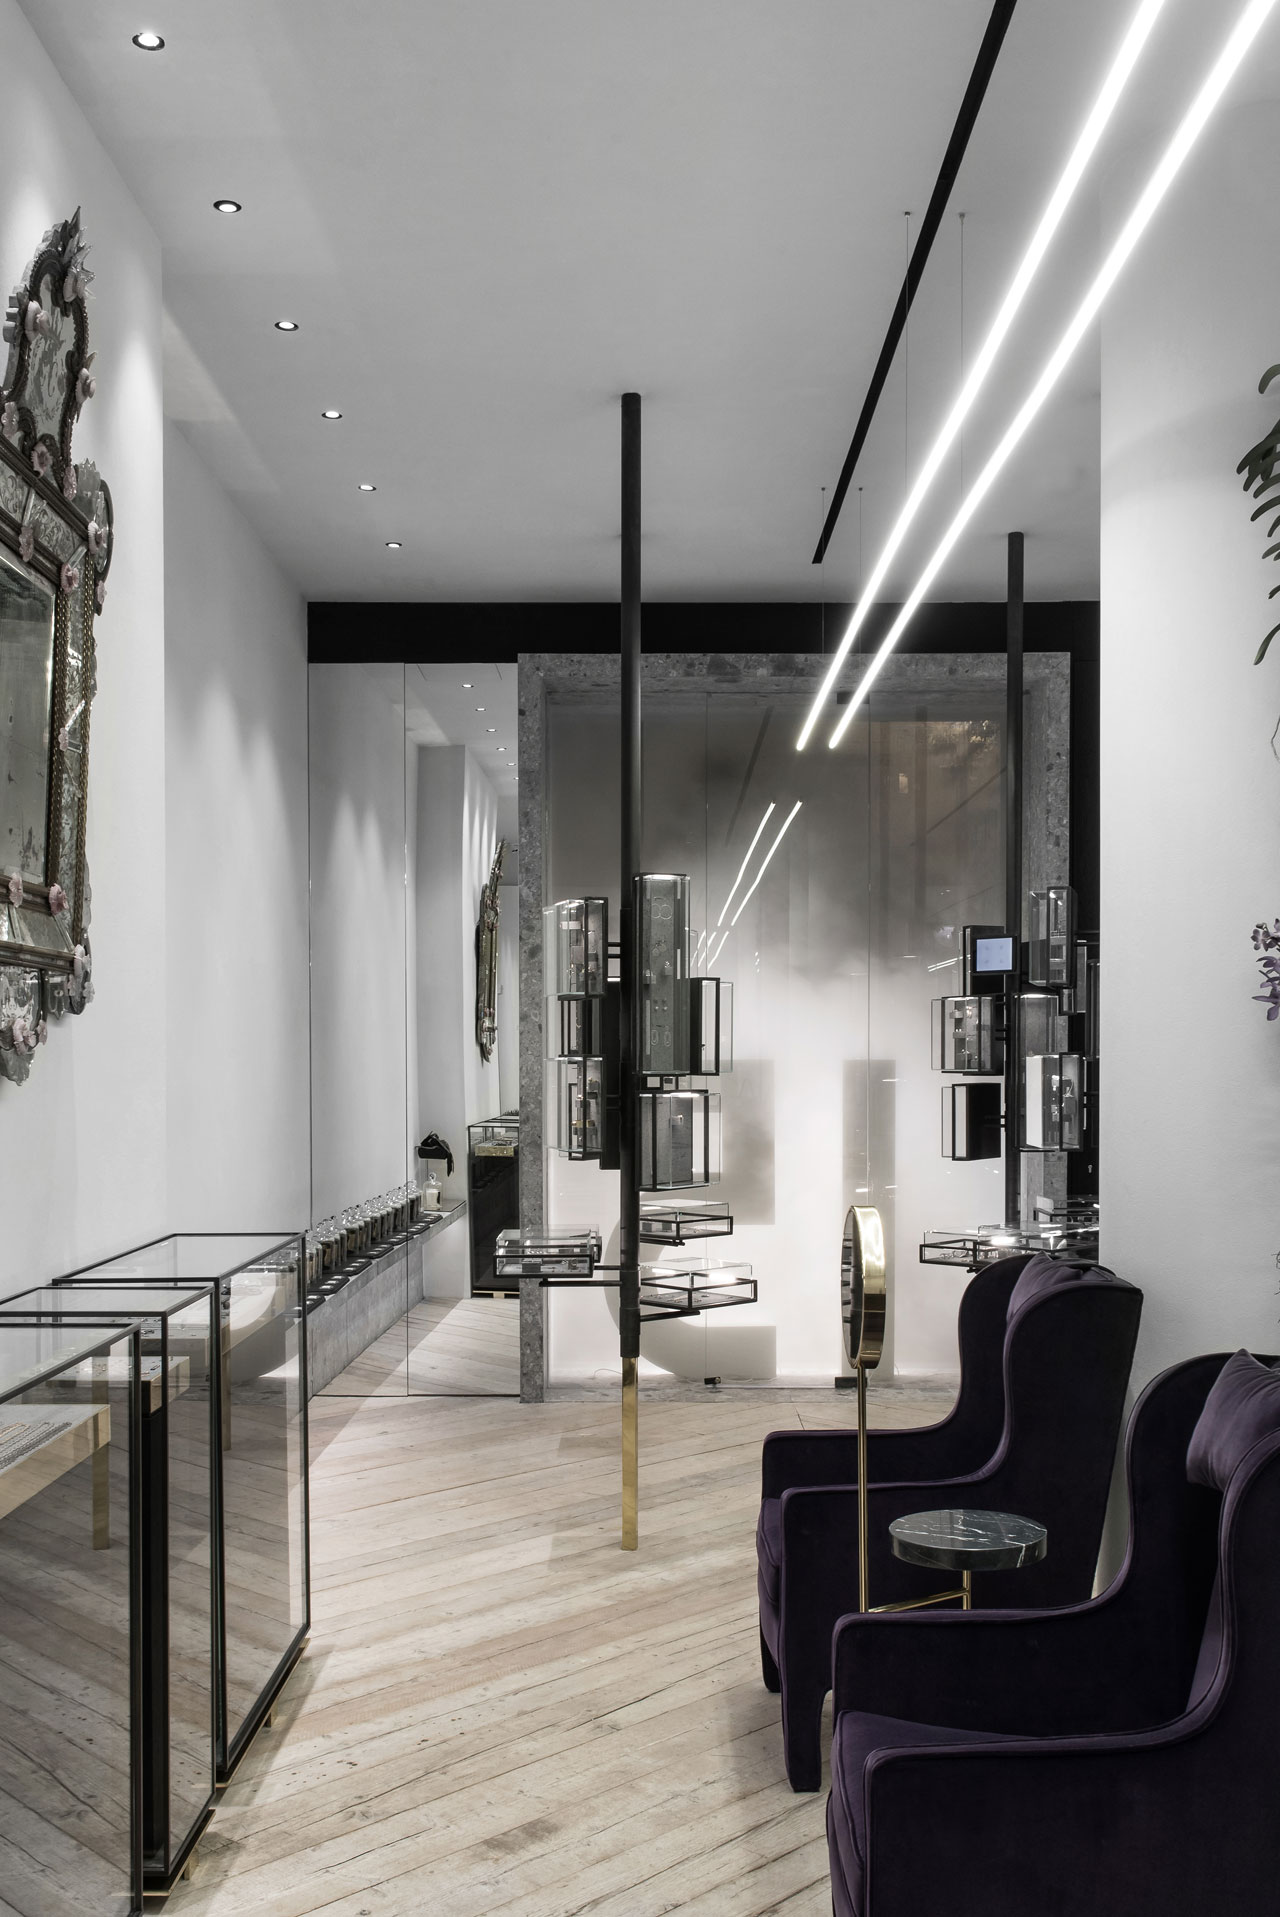 Ileana Makri Store by Kois Associated Architects.Photo by George Sfakianakis, © Ileana Makri.